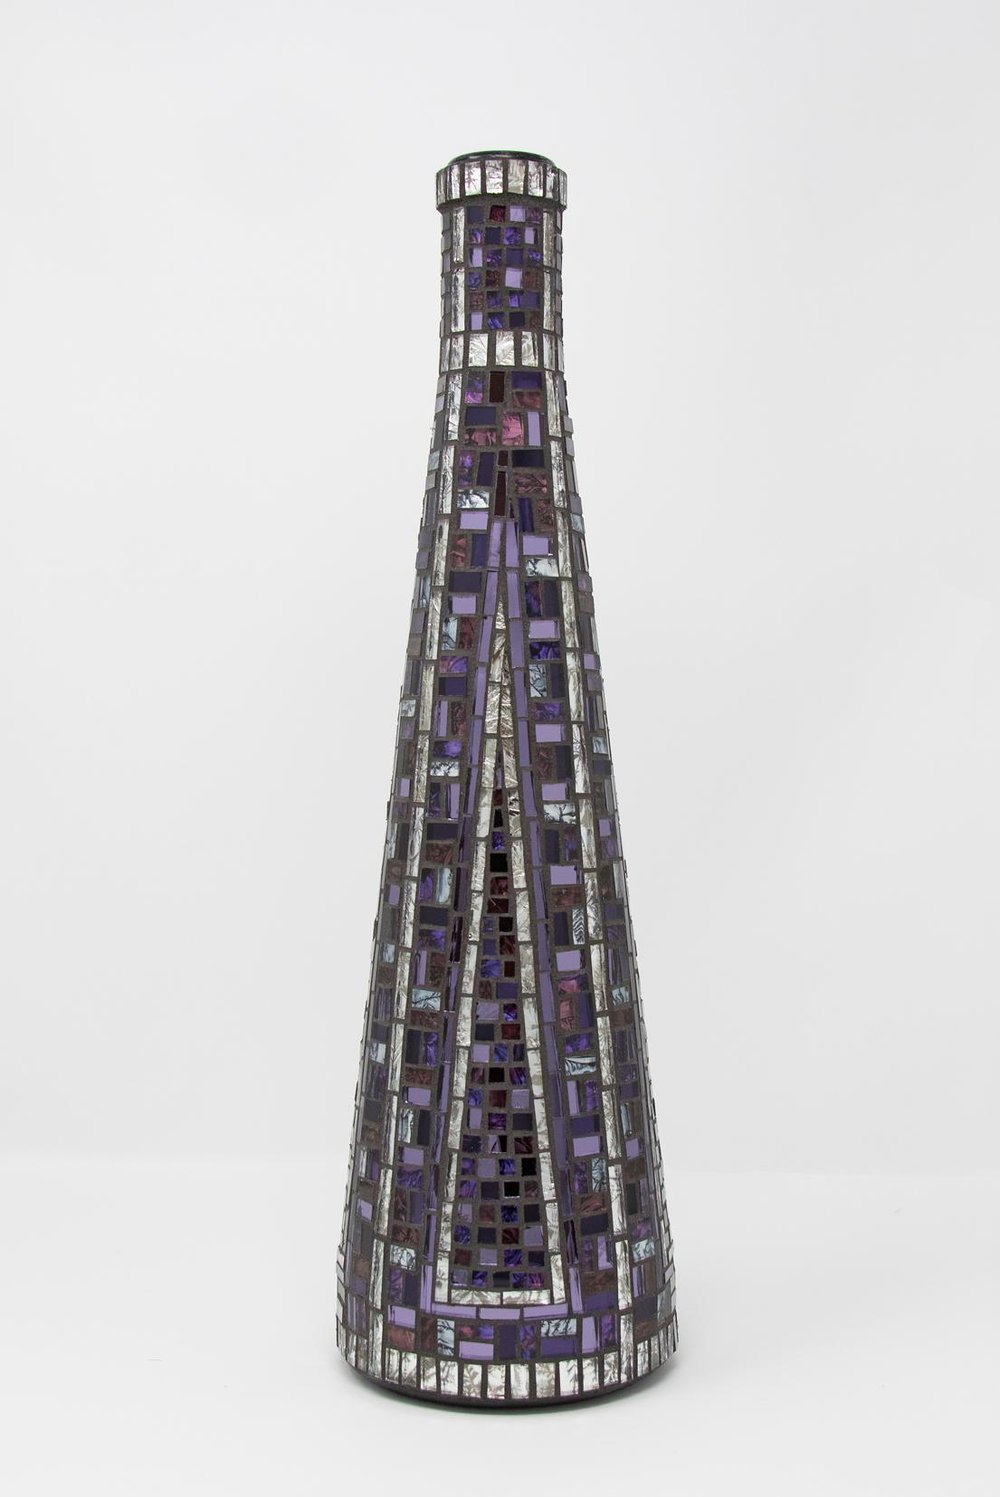 "(2017)  Purple and Silver Bottle  14"" x 4.25"" 